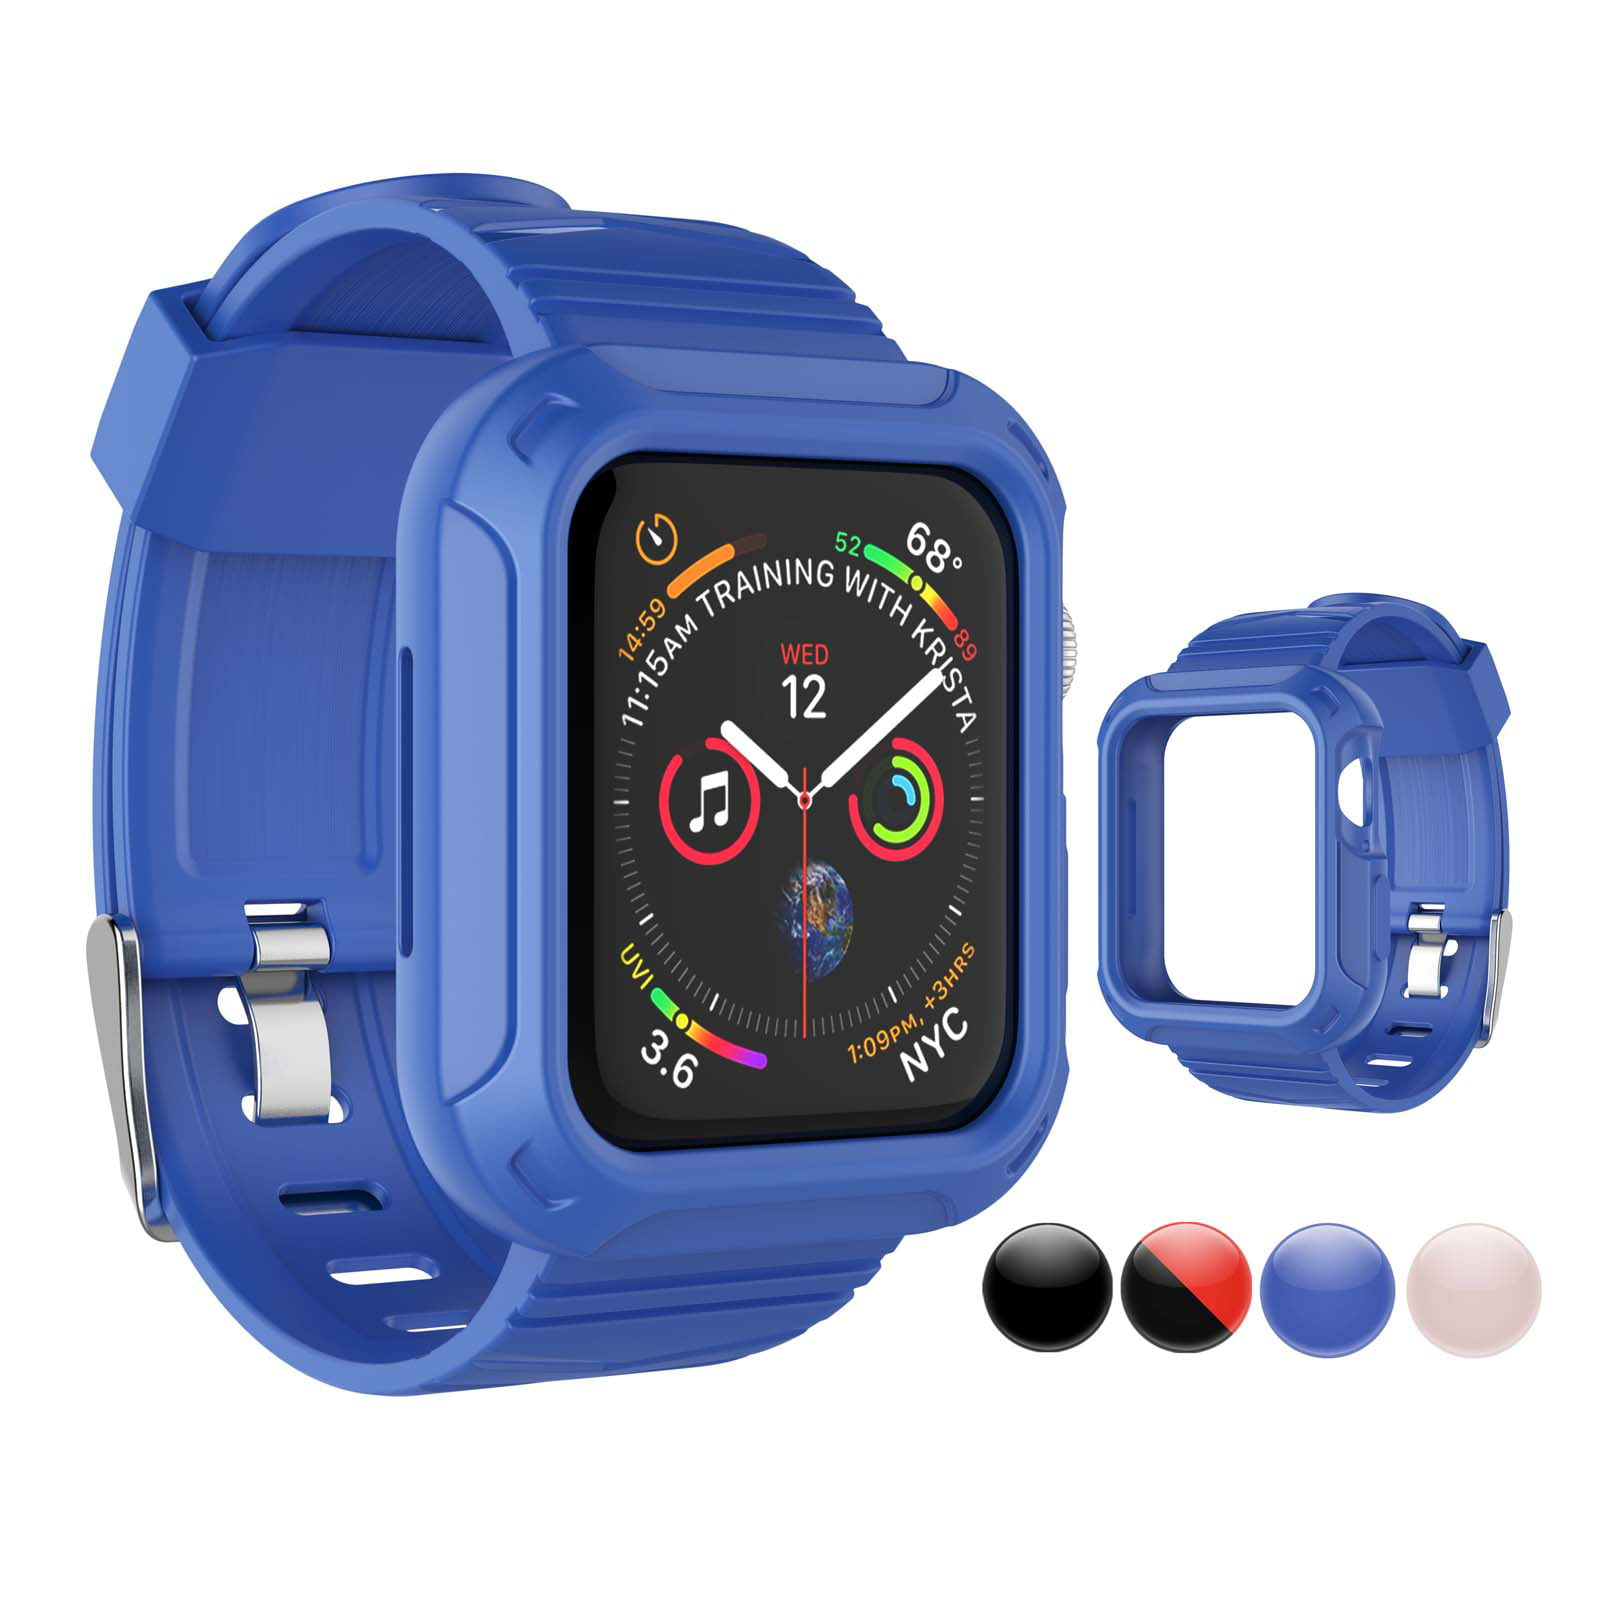 Njjex for Apple Watch Series 6 5 4 3 2 1 SE 38mm 40mm 42mm 44mm Rugged Armor Pro Cases, Rugged Protective Case with Strap Bands for Apple Watch SE Series 1 2 3 4 5 6